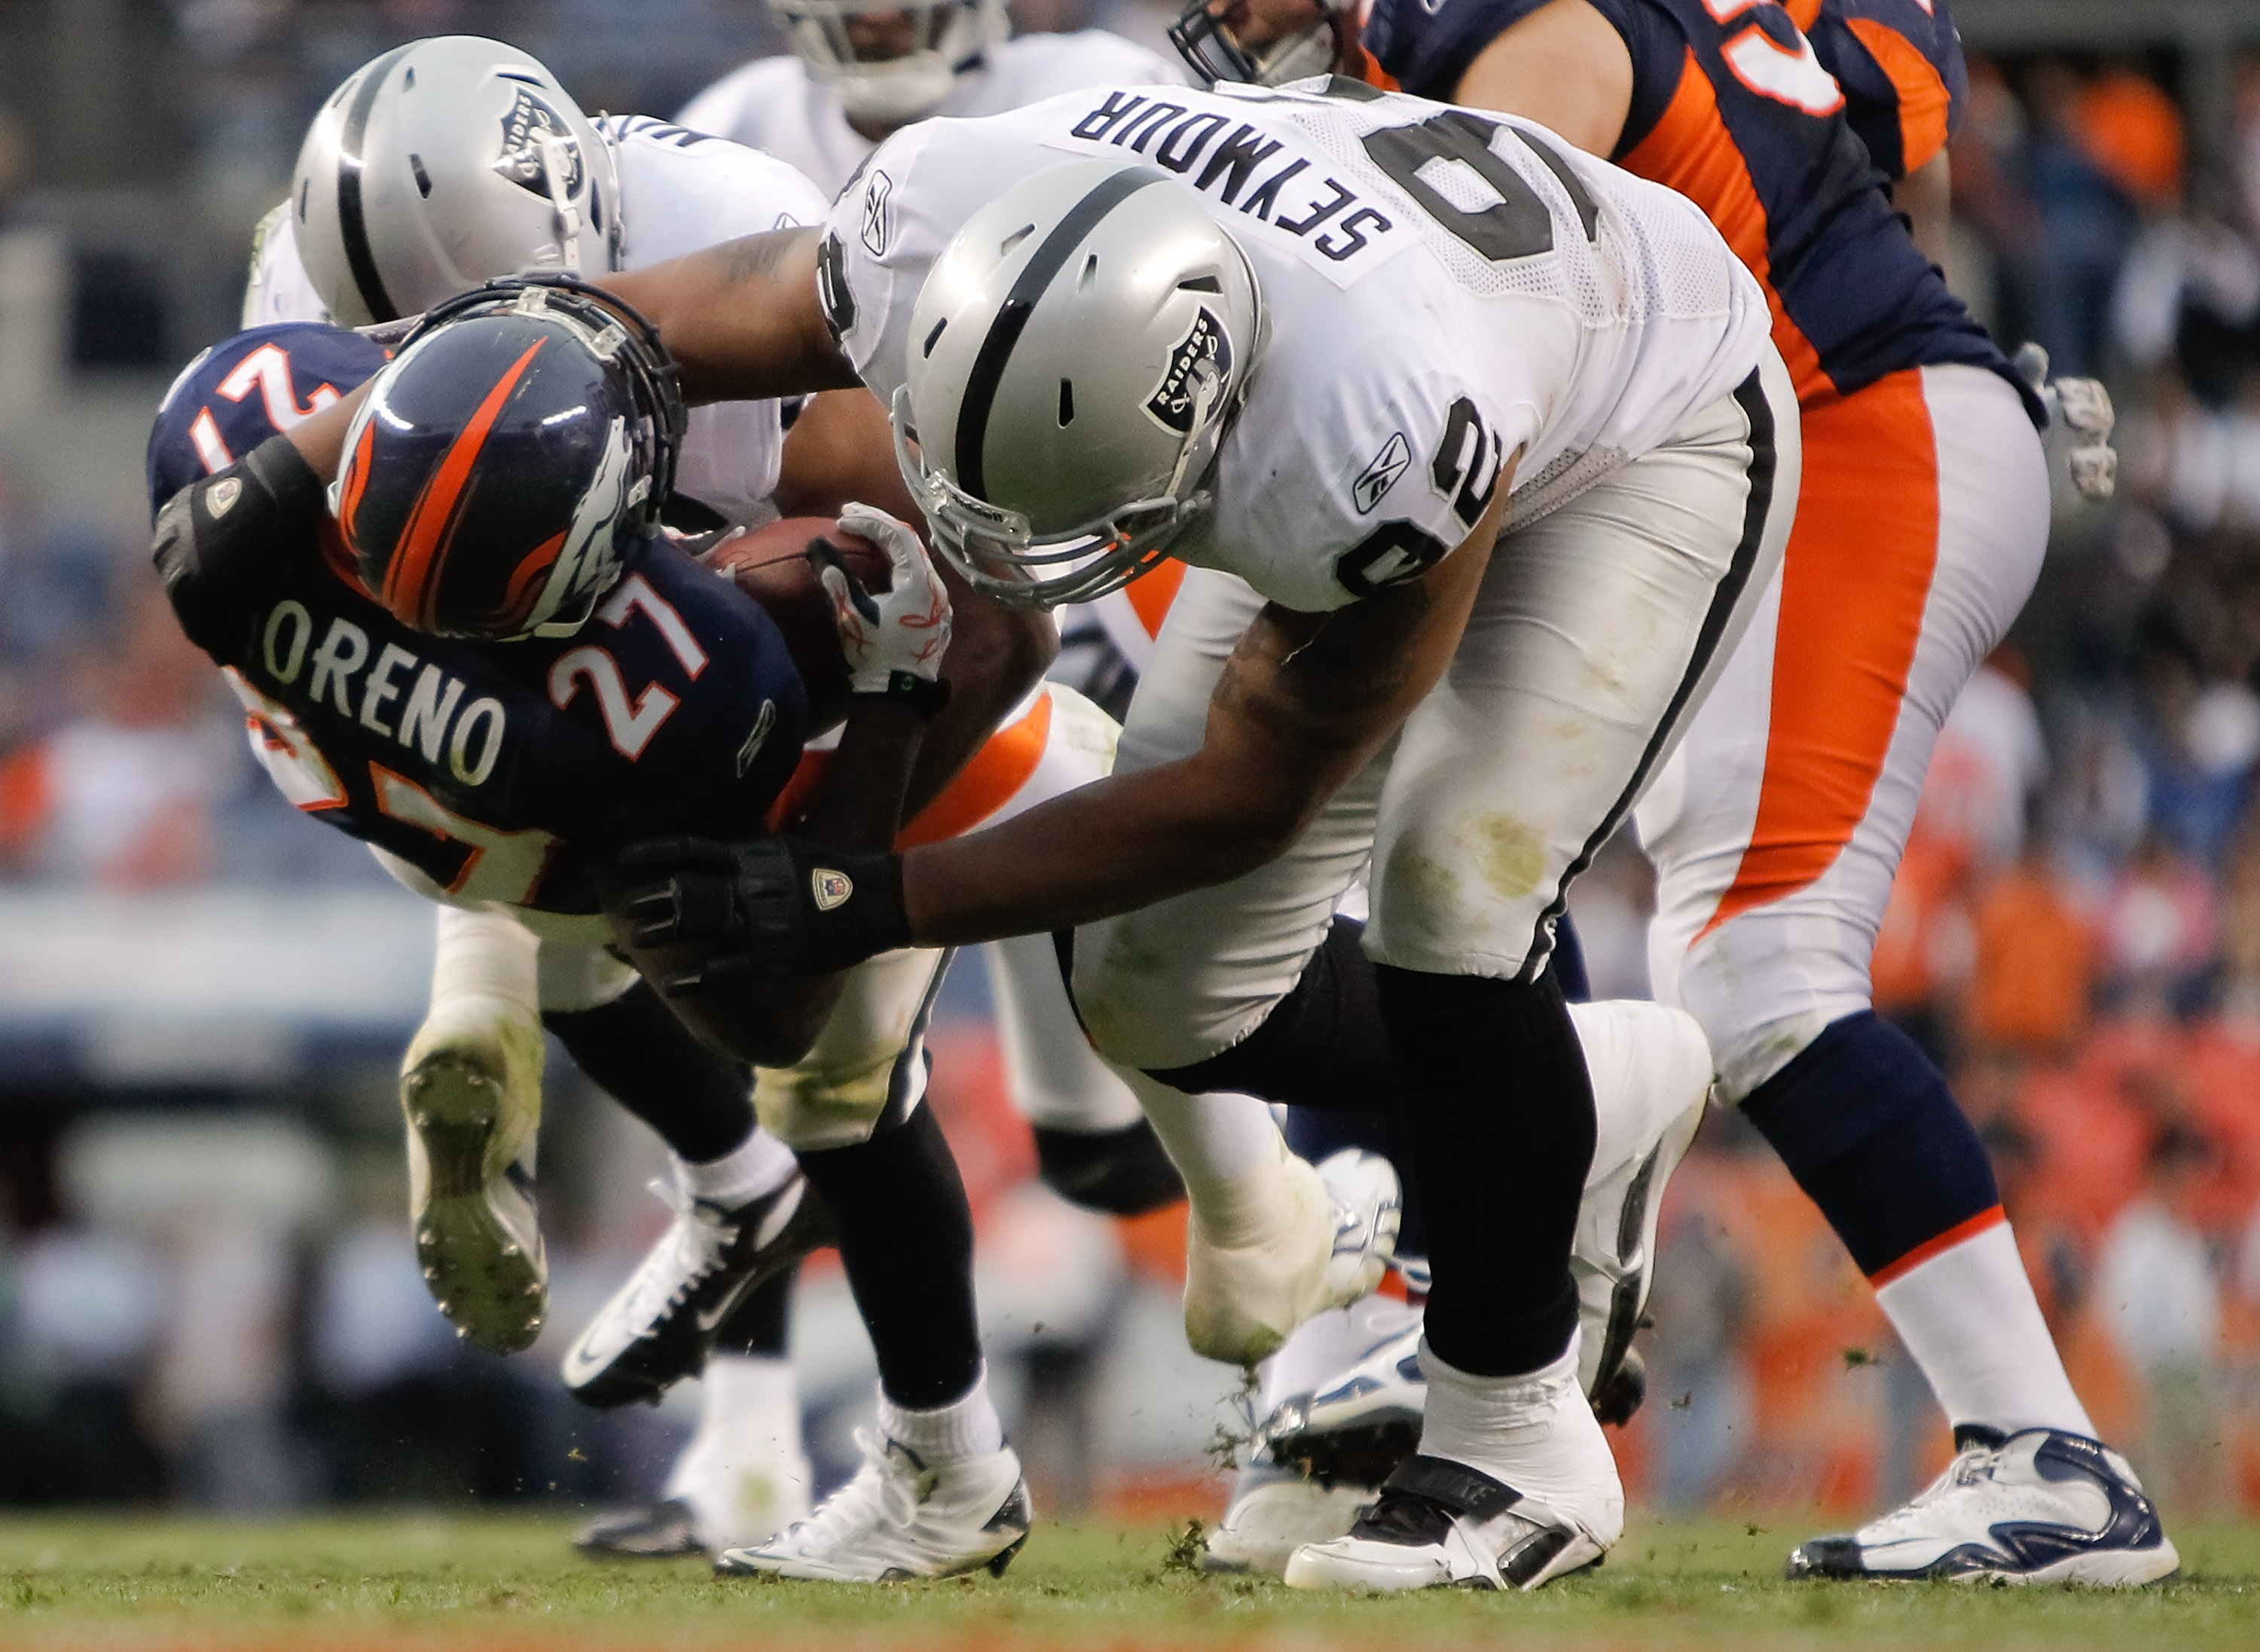 DENVER - OCTOBER 24:  Defensive end Richard Seymour #92 of the Oakland Raiders throws running back Knowshon Moreno #27 of the Denver Broncos to the ground in the fourth quarter at INVESCO Field at Mile High on October 24, 2010 in Denver, Colorado. The Rai